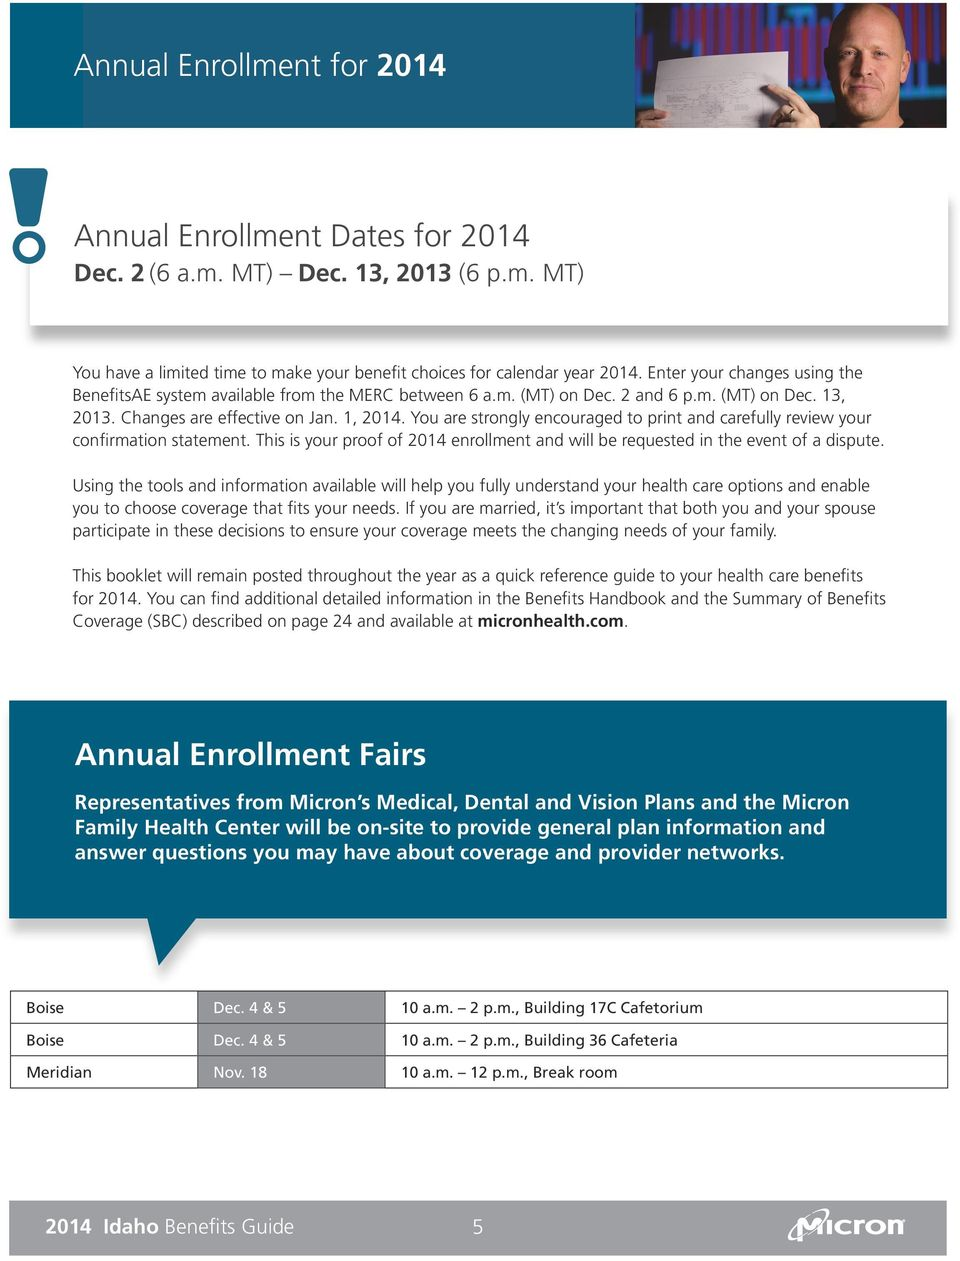 You are strongly encouraged to print and carefully review your confirmation statement. This is your proof of 2014 enrollment and will be requested in the event of a dispute.